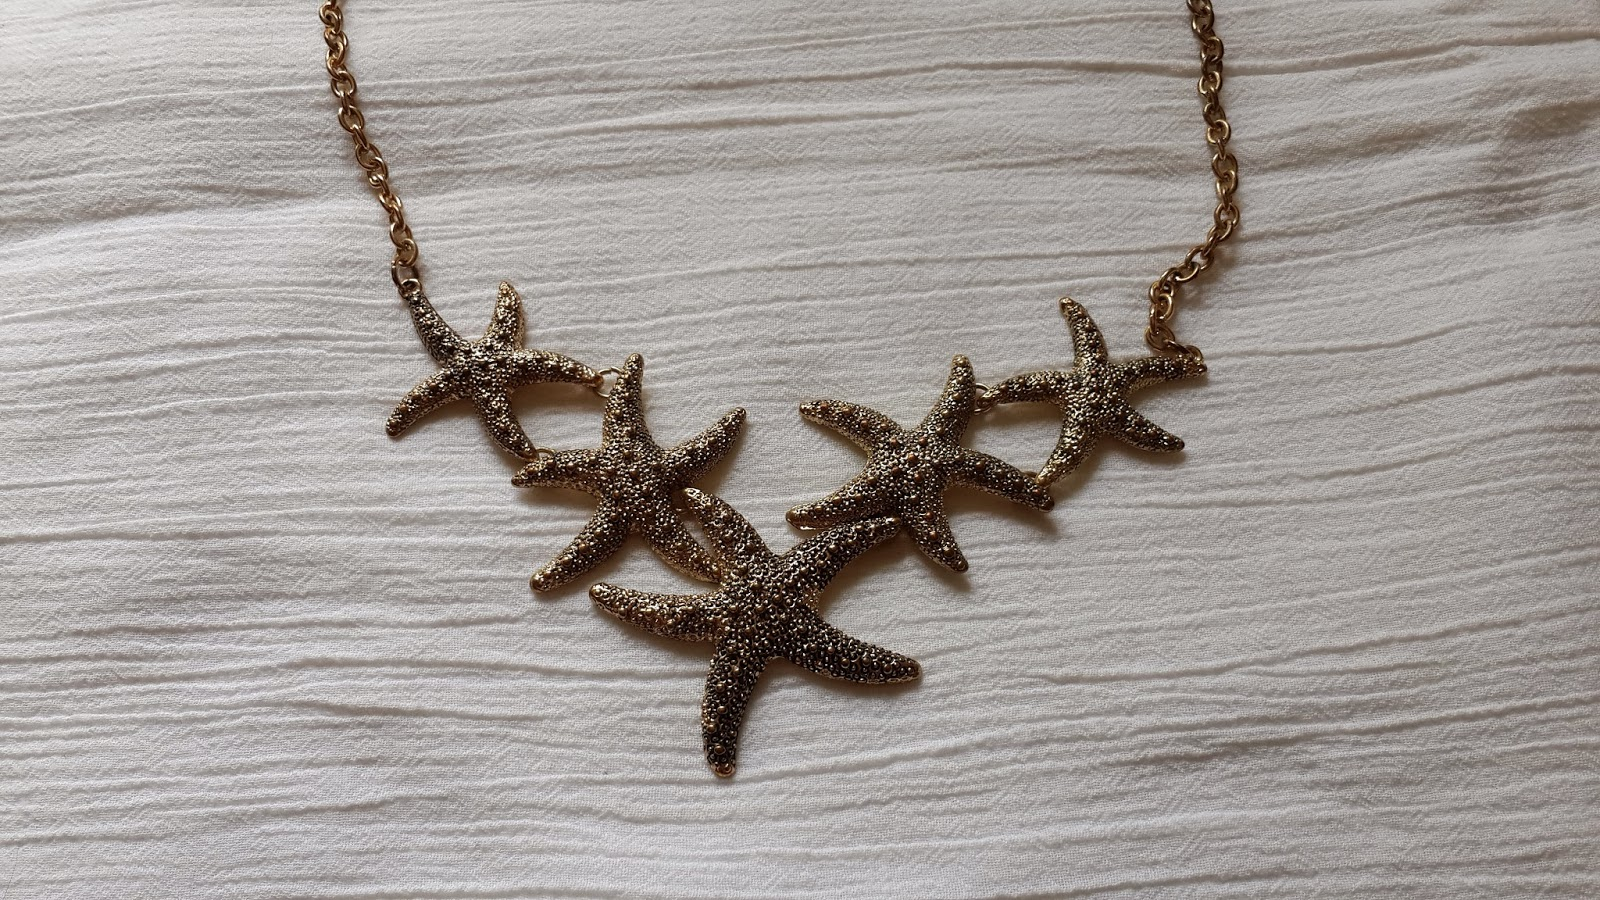 Aldo Accessories India - Aldo Accessories - Starfish Necklace